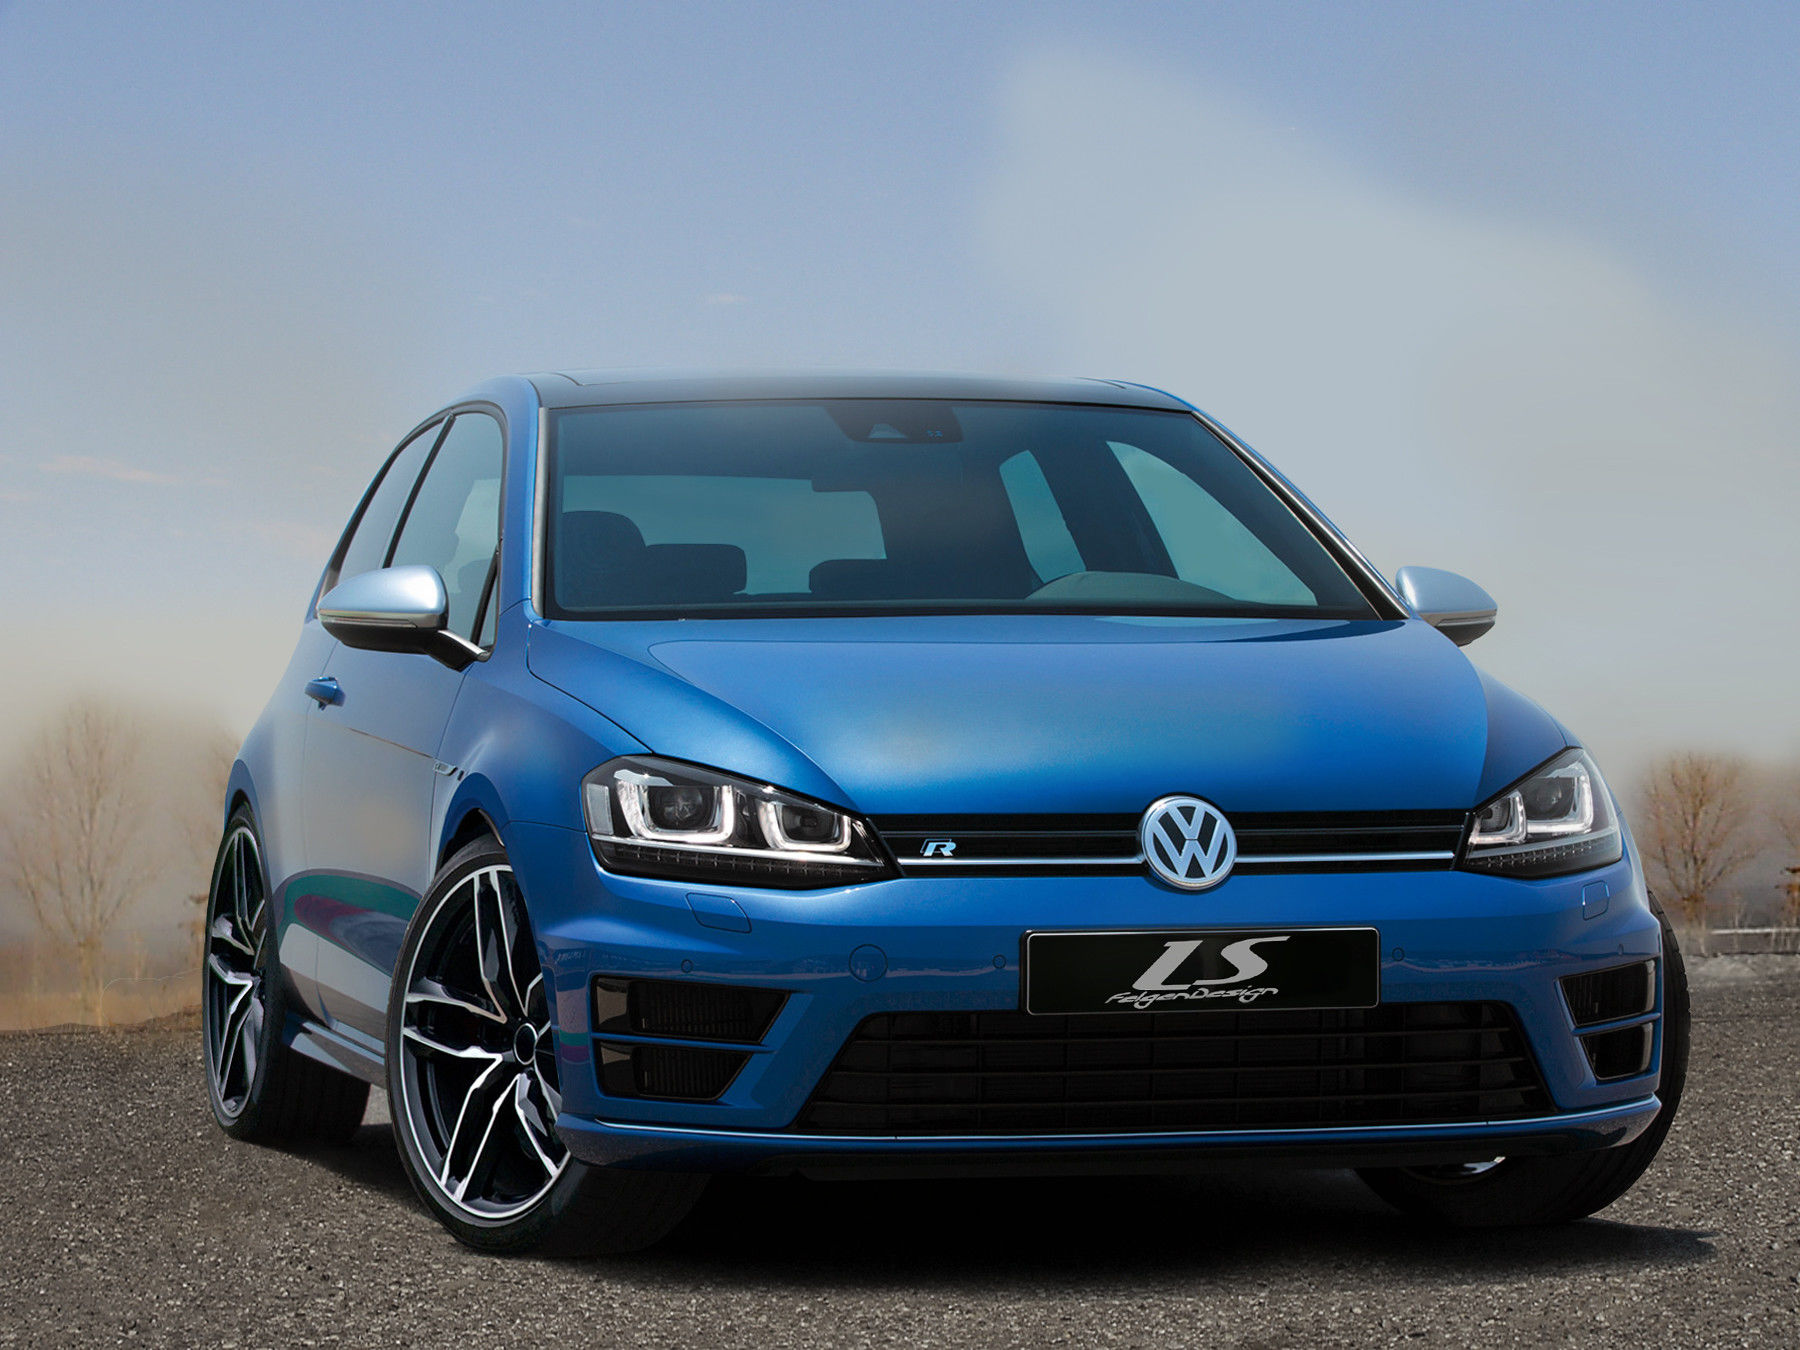 news alufelgen f r vw golf 7 r performance gti. Black Bedroom Furniture Sets. Home Design Ideas